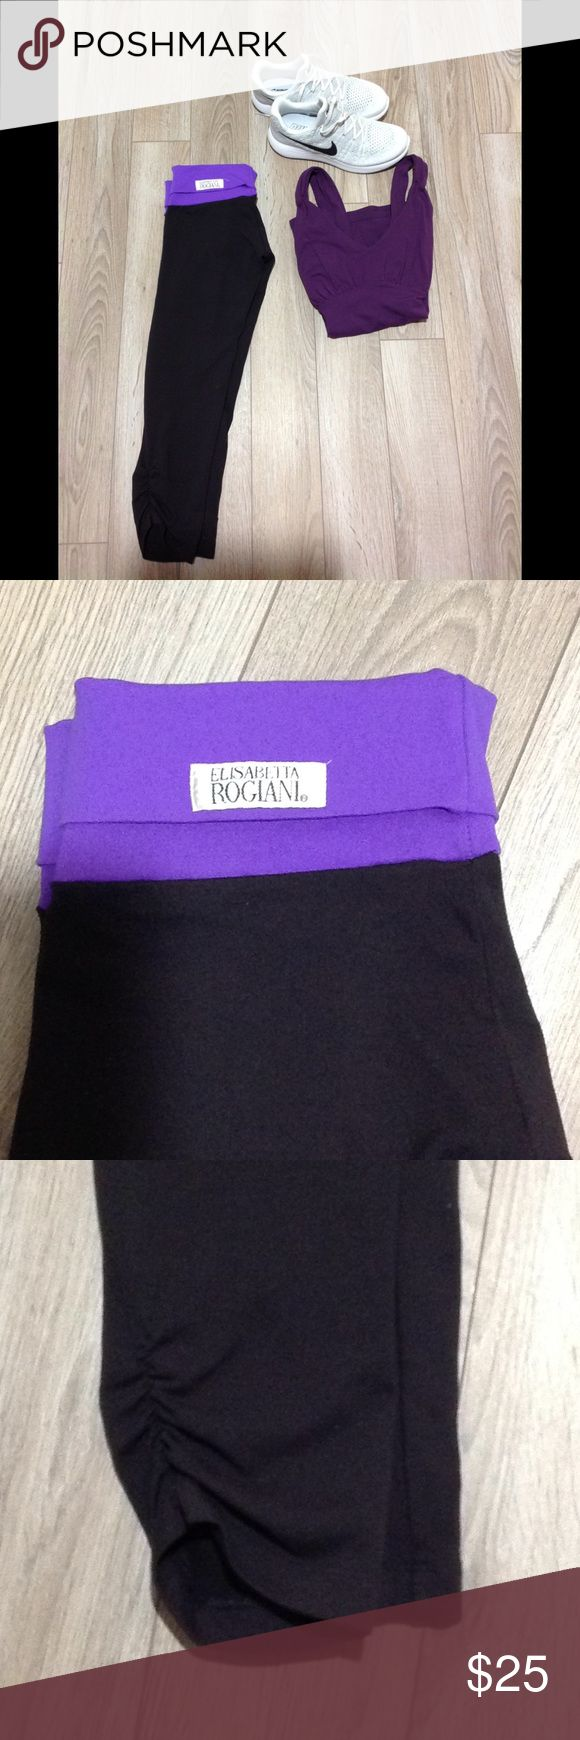 Elisabetta Rogiani Purple Capri leggings small Purple Elisabetta Rogiani Capri leggings with gathered legs fold waist.    Super cute for yoga, the gym, running or for athleisure wear.   Great preowned condition. Elisabetta Rogiani Pants Ankle & Cropped